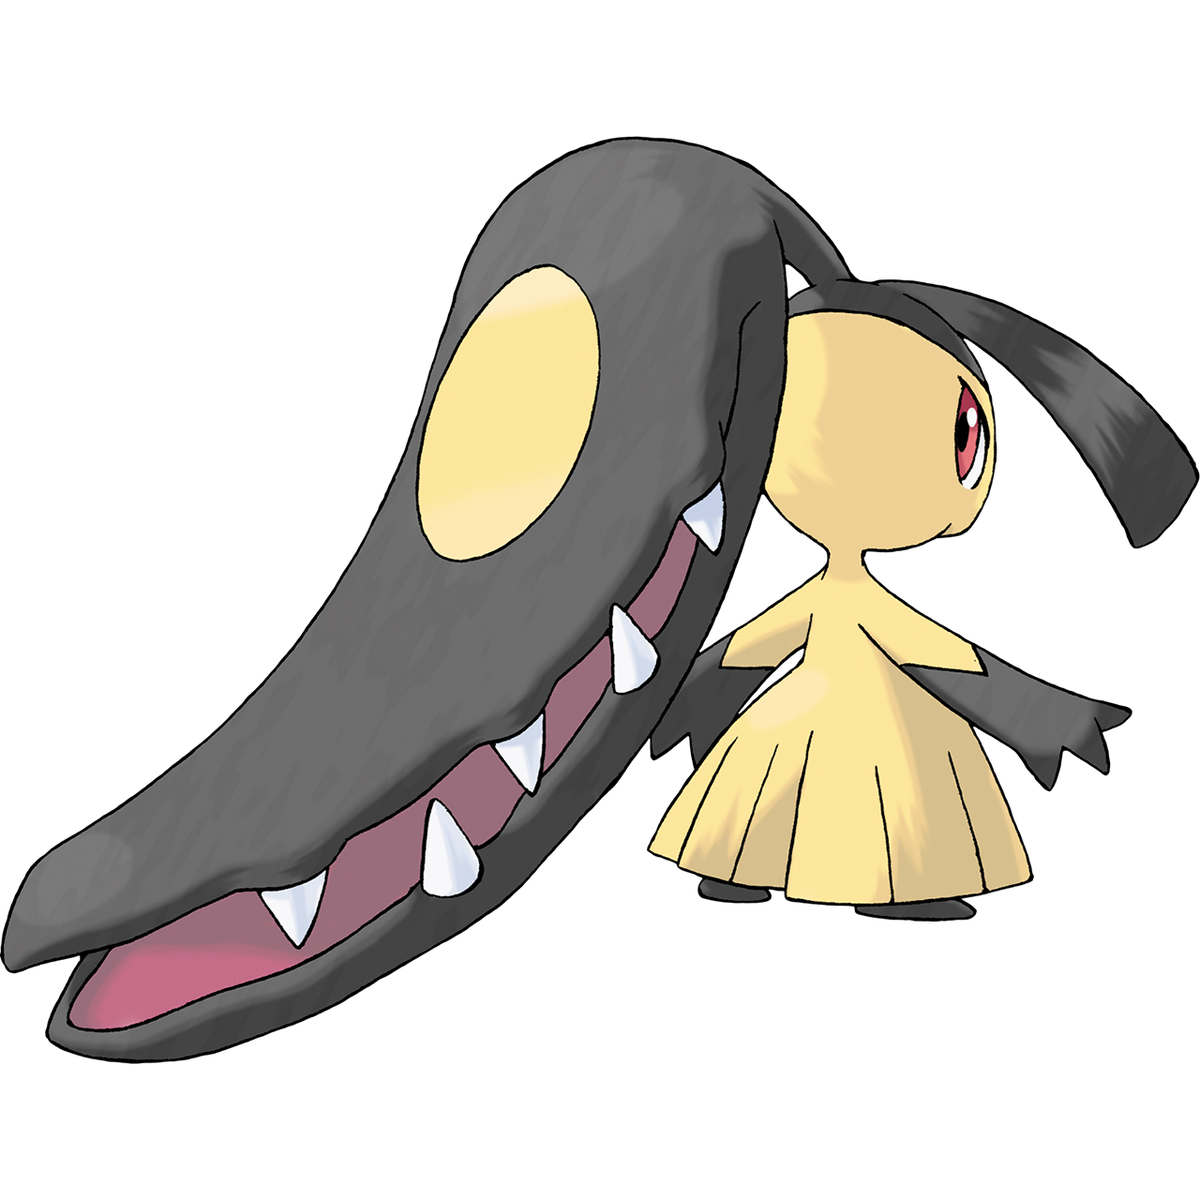 Mawile is exclusive to Pokémon Sword